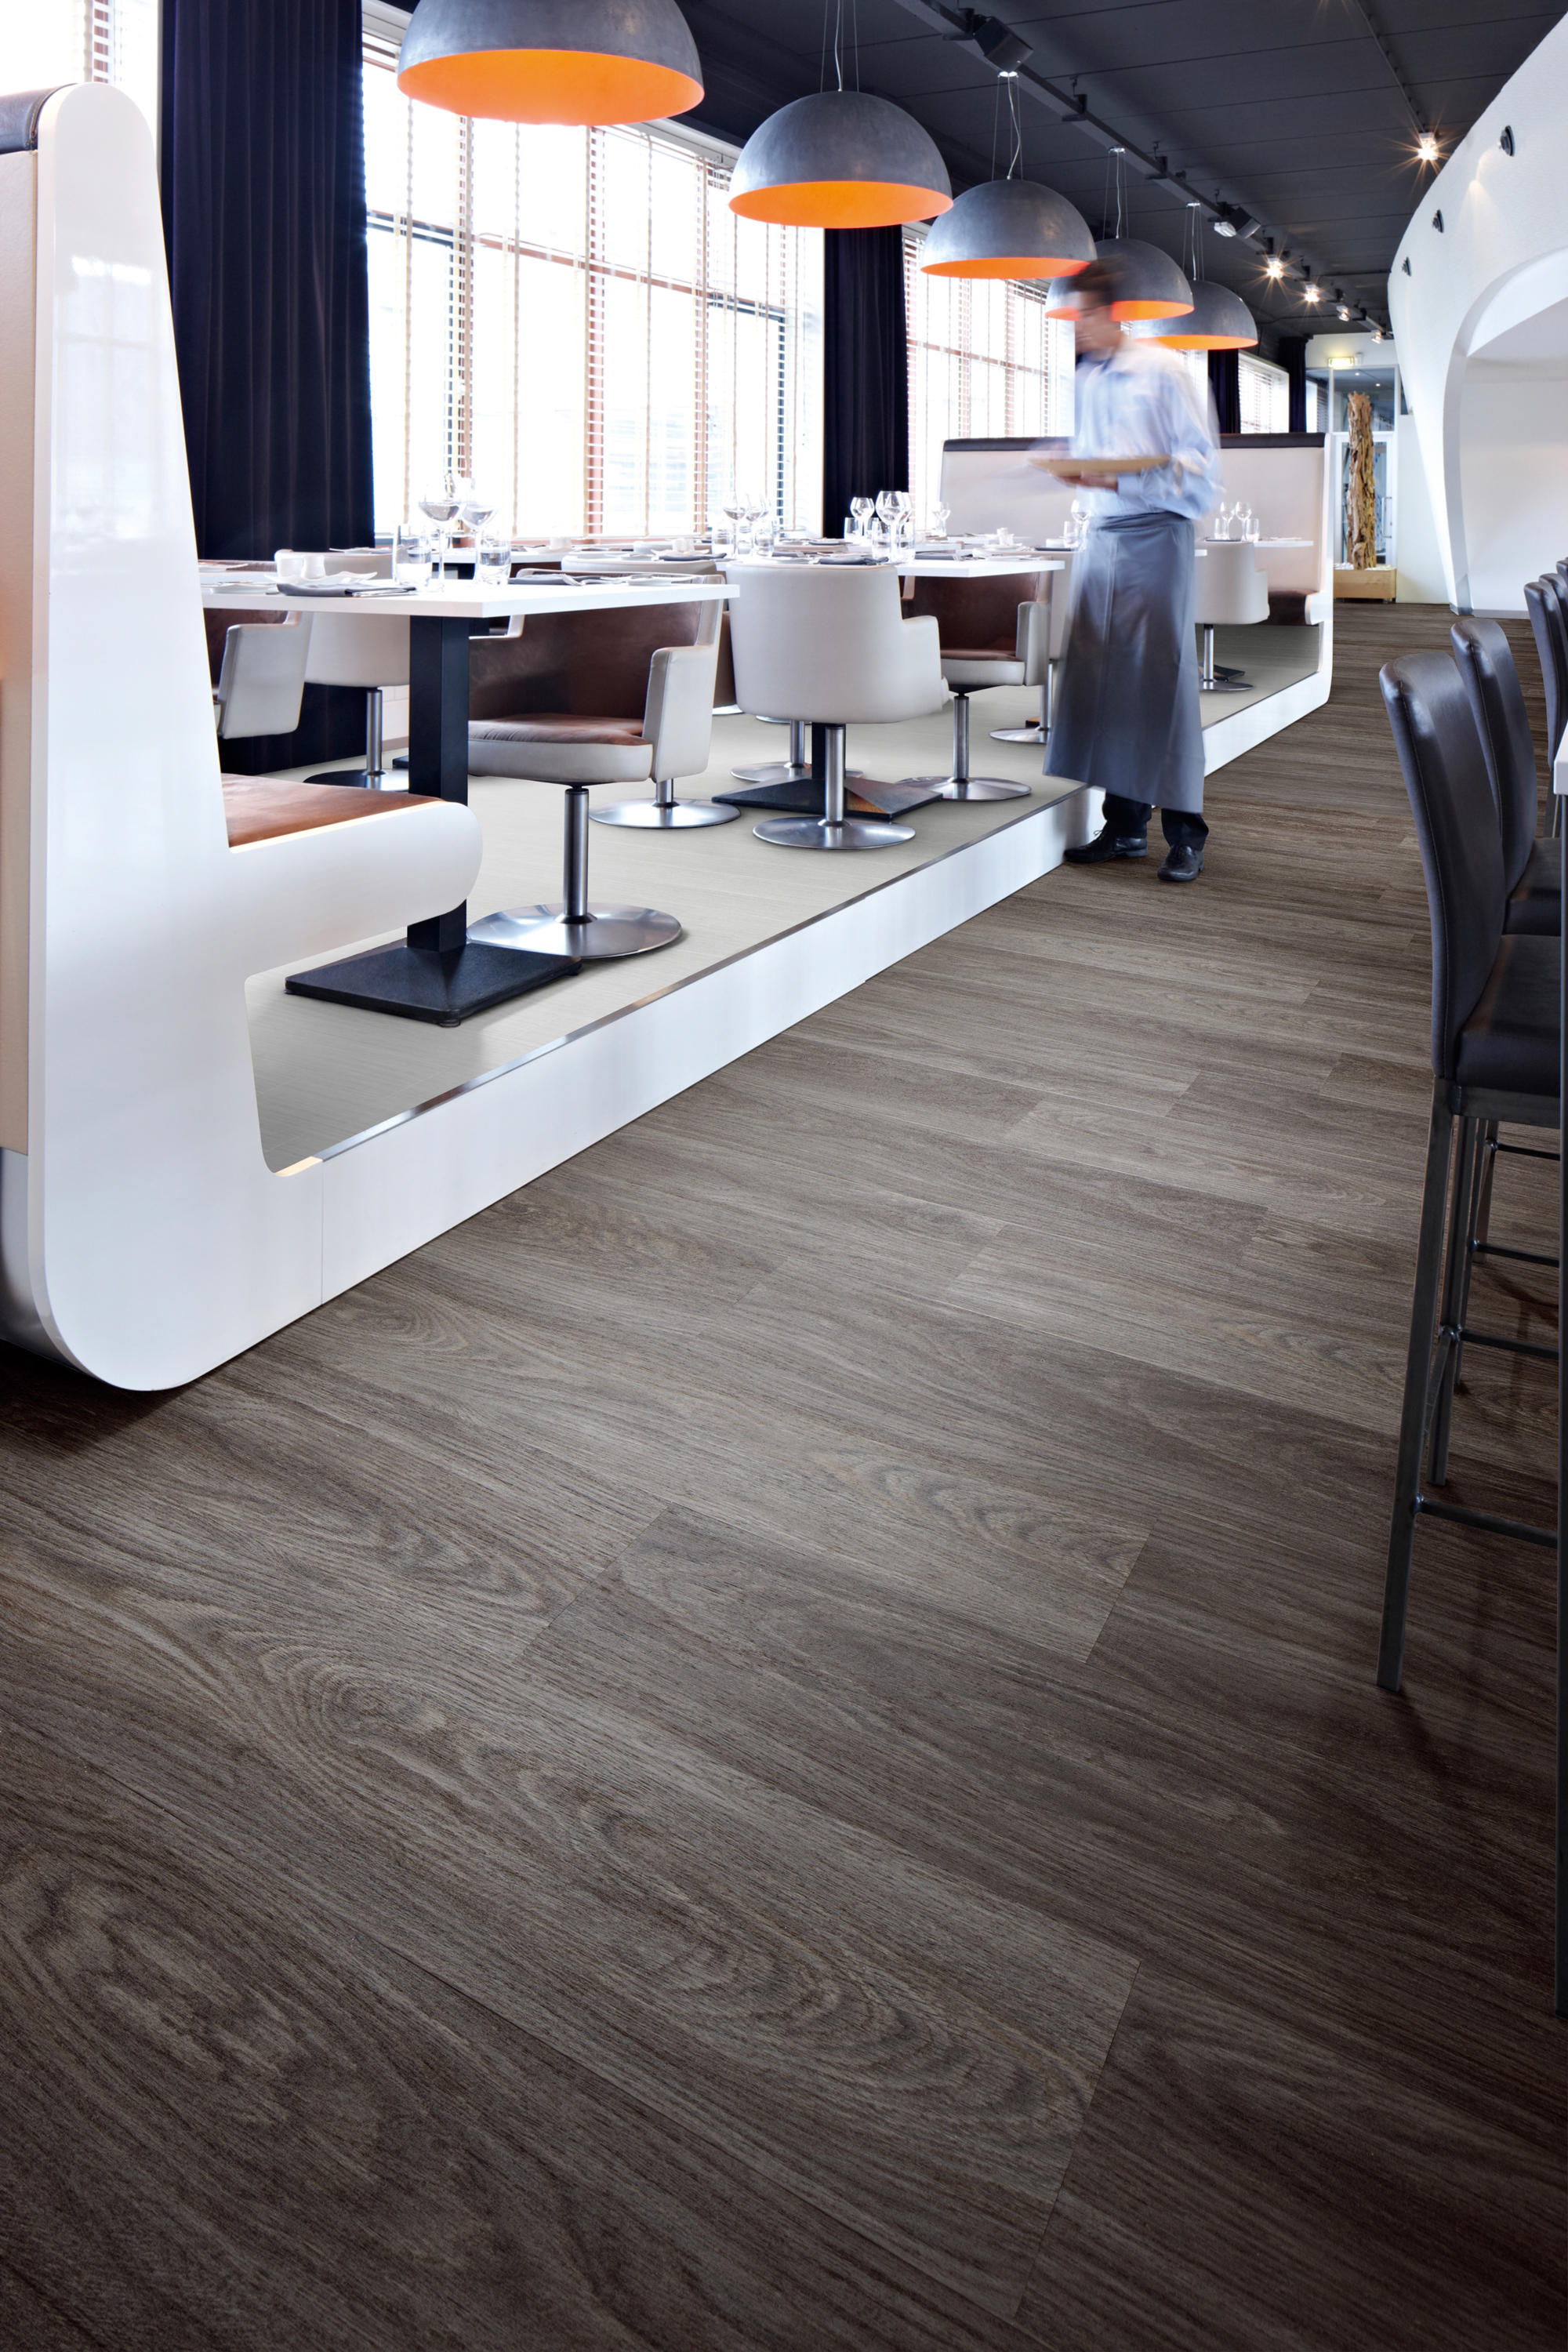 Allura Wood White Seagrass Synthetic Tiles From Forbo